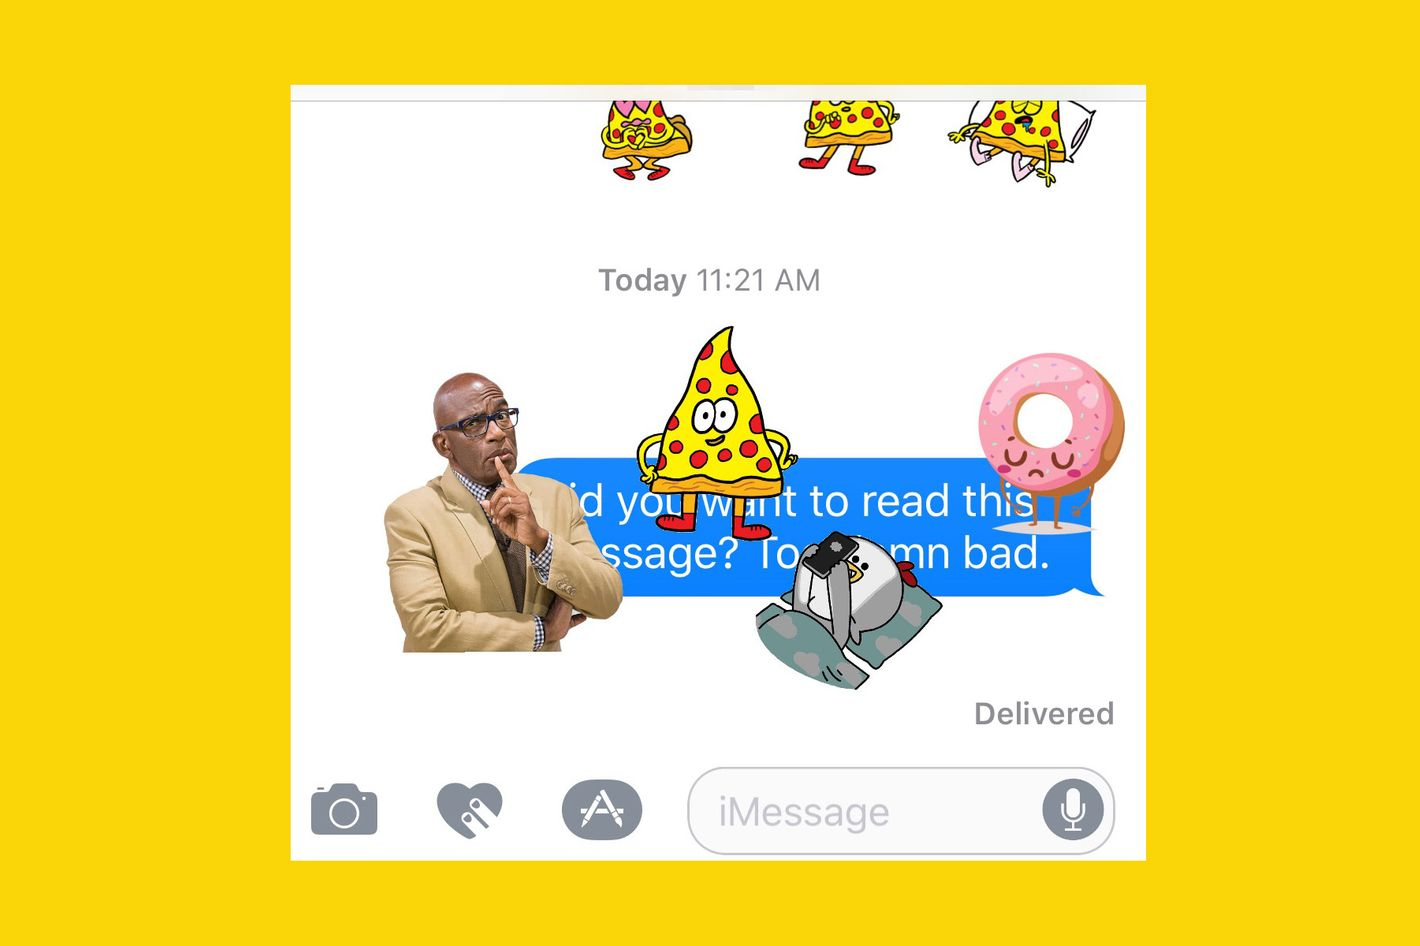 How to Delete iMessage Stickers in iOS 10